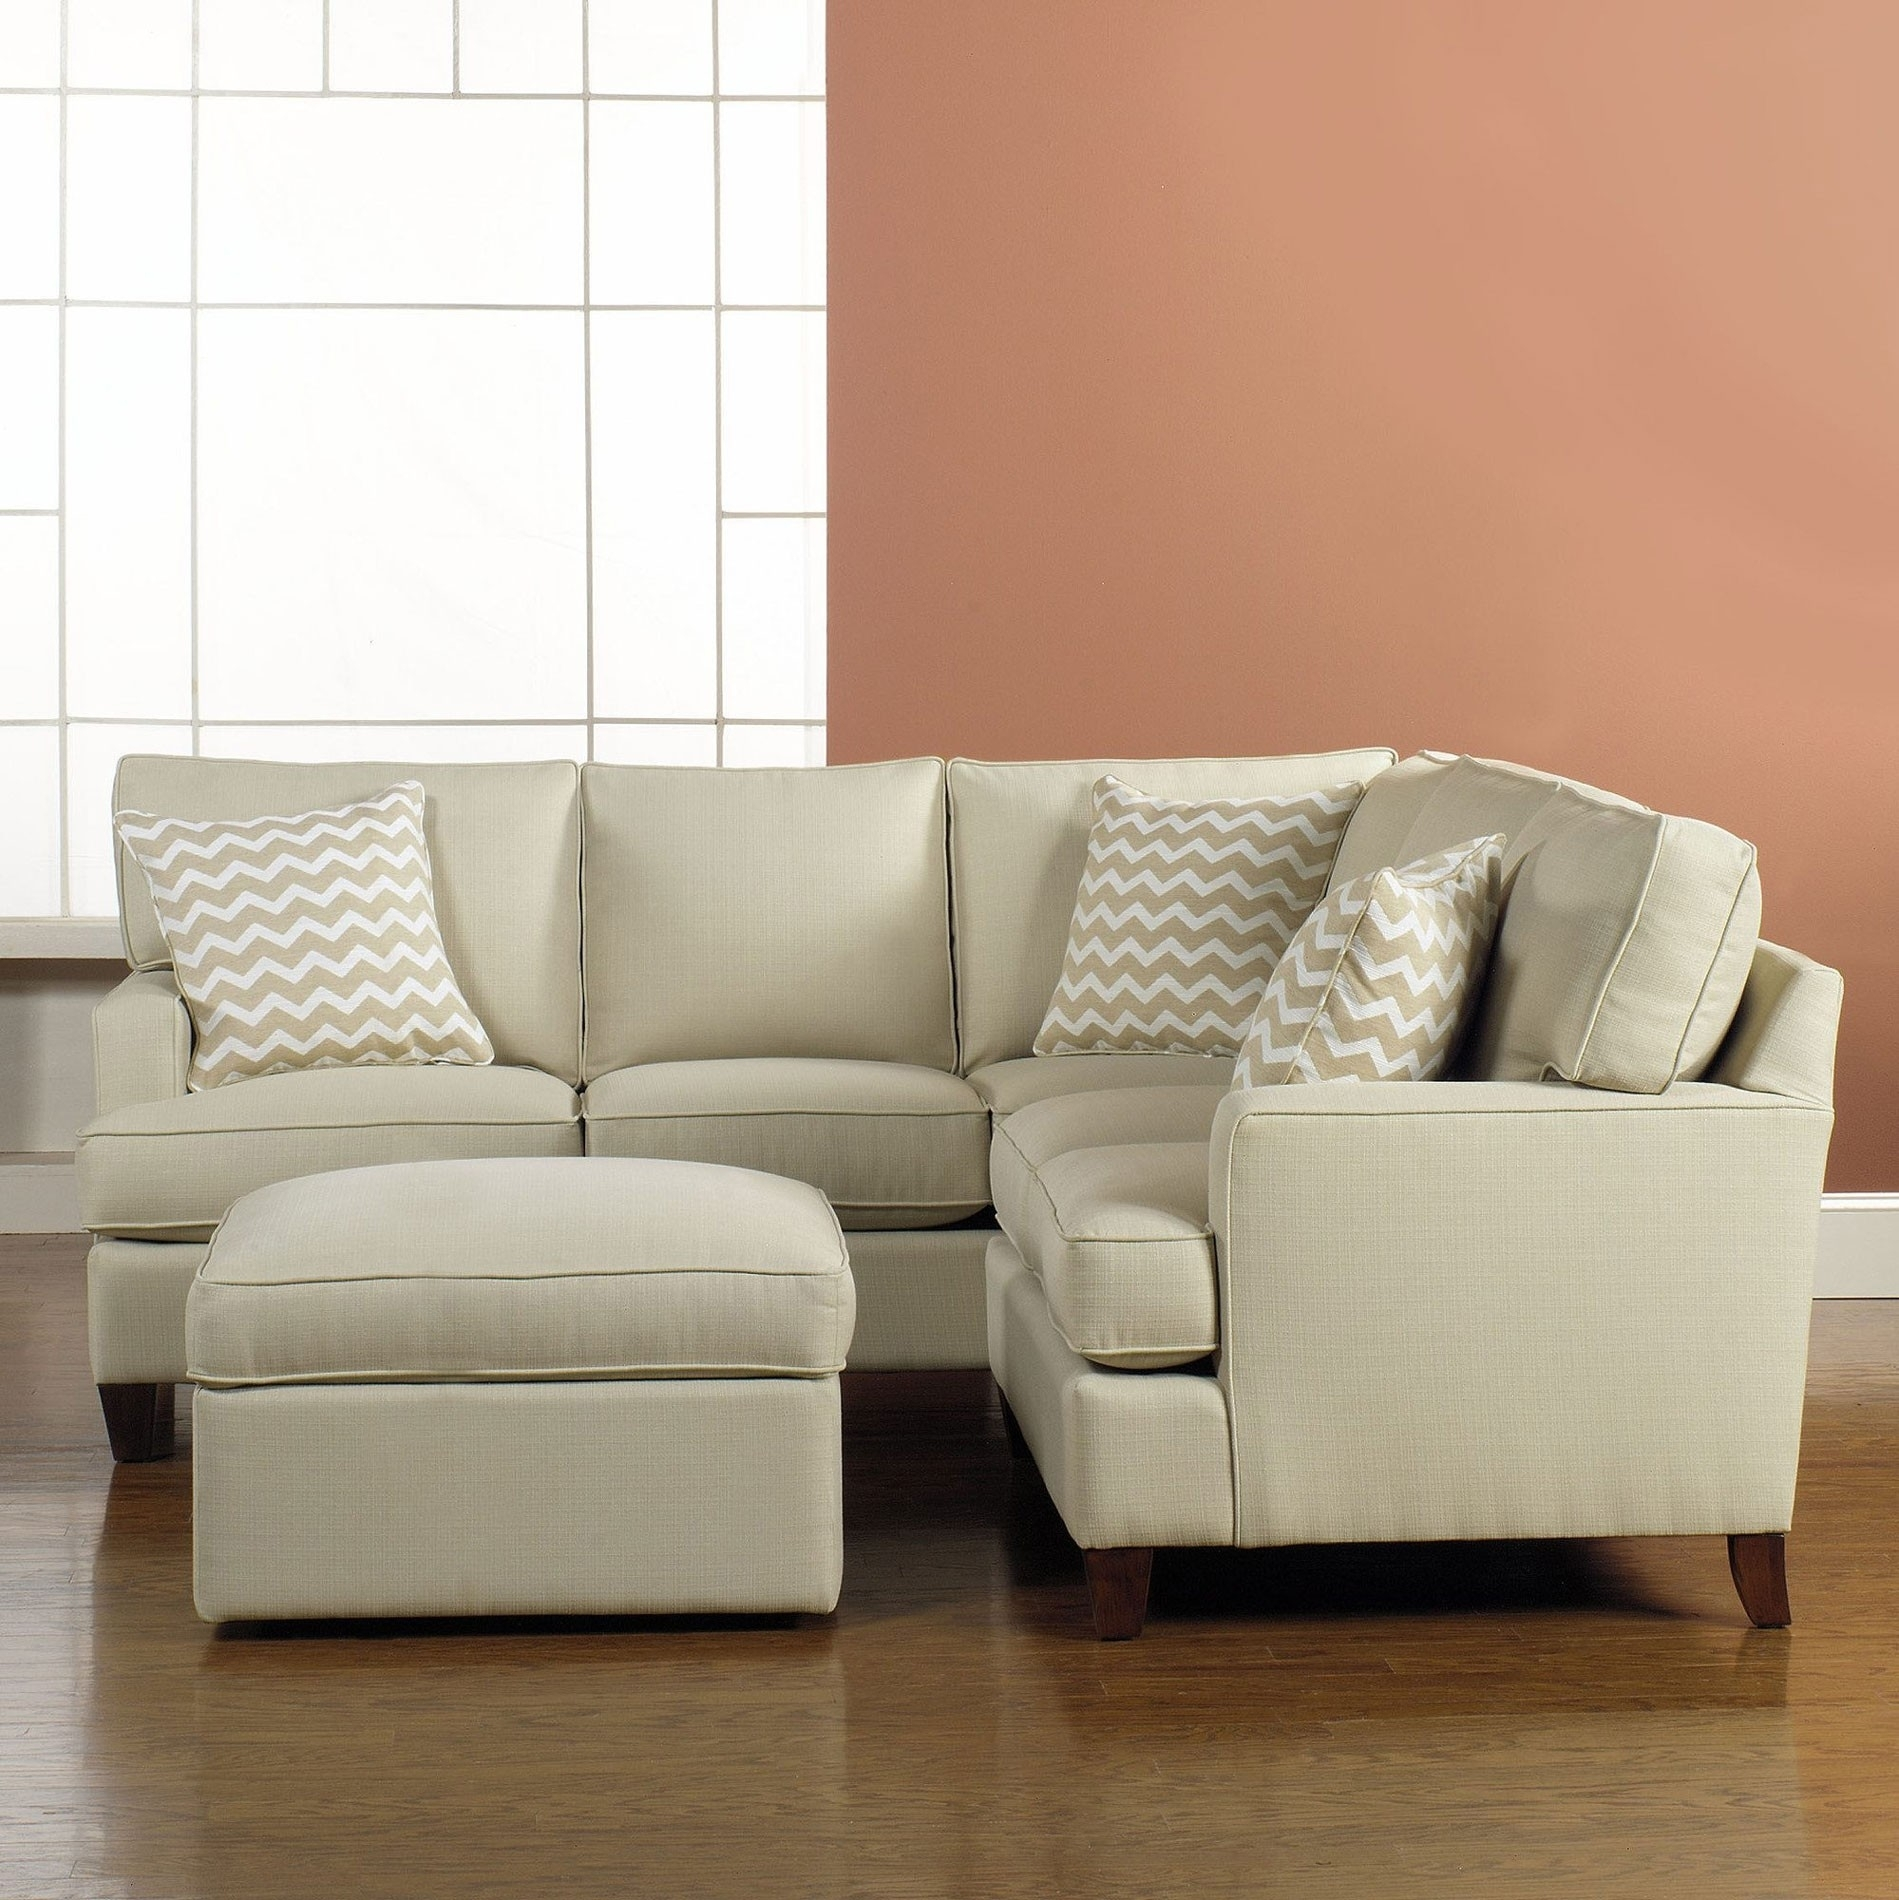 Small Loveseats For Apartments Modern Furniture Small Spaces Small Inside Sectional Sofas For Small Spaces (View 13 of 15)